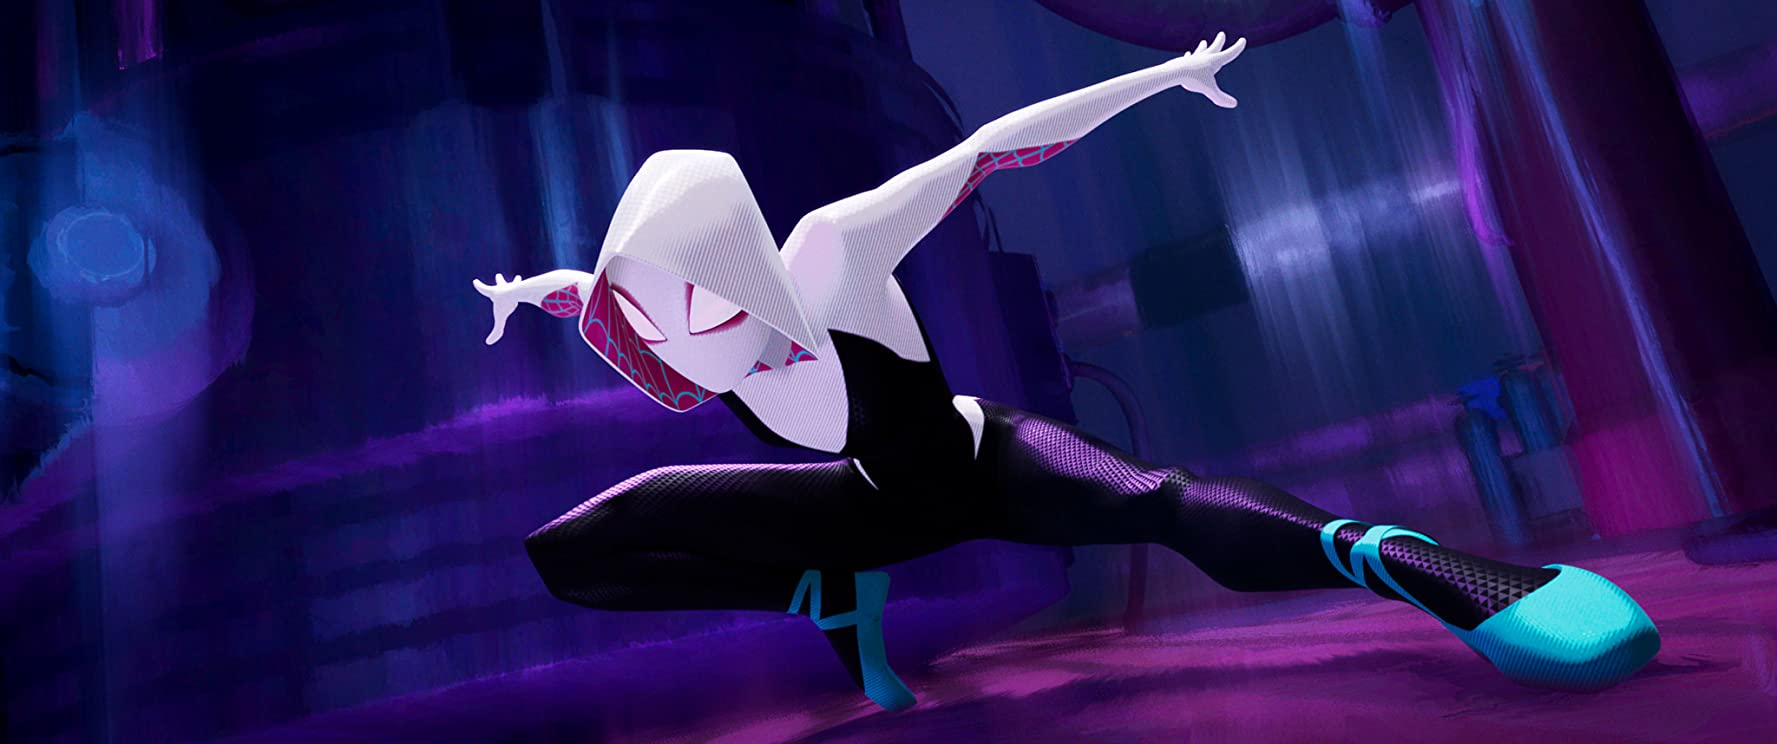 Hailee Steinfeld in Spider-Man: Into the Spider-Verse (2018)